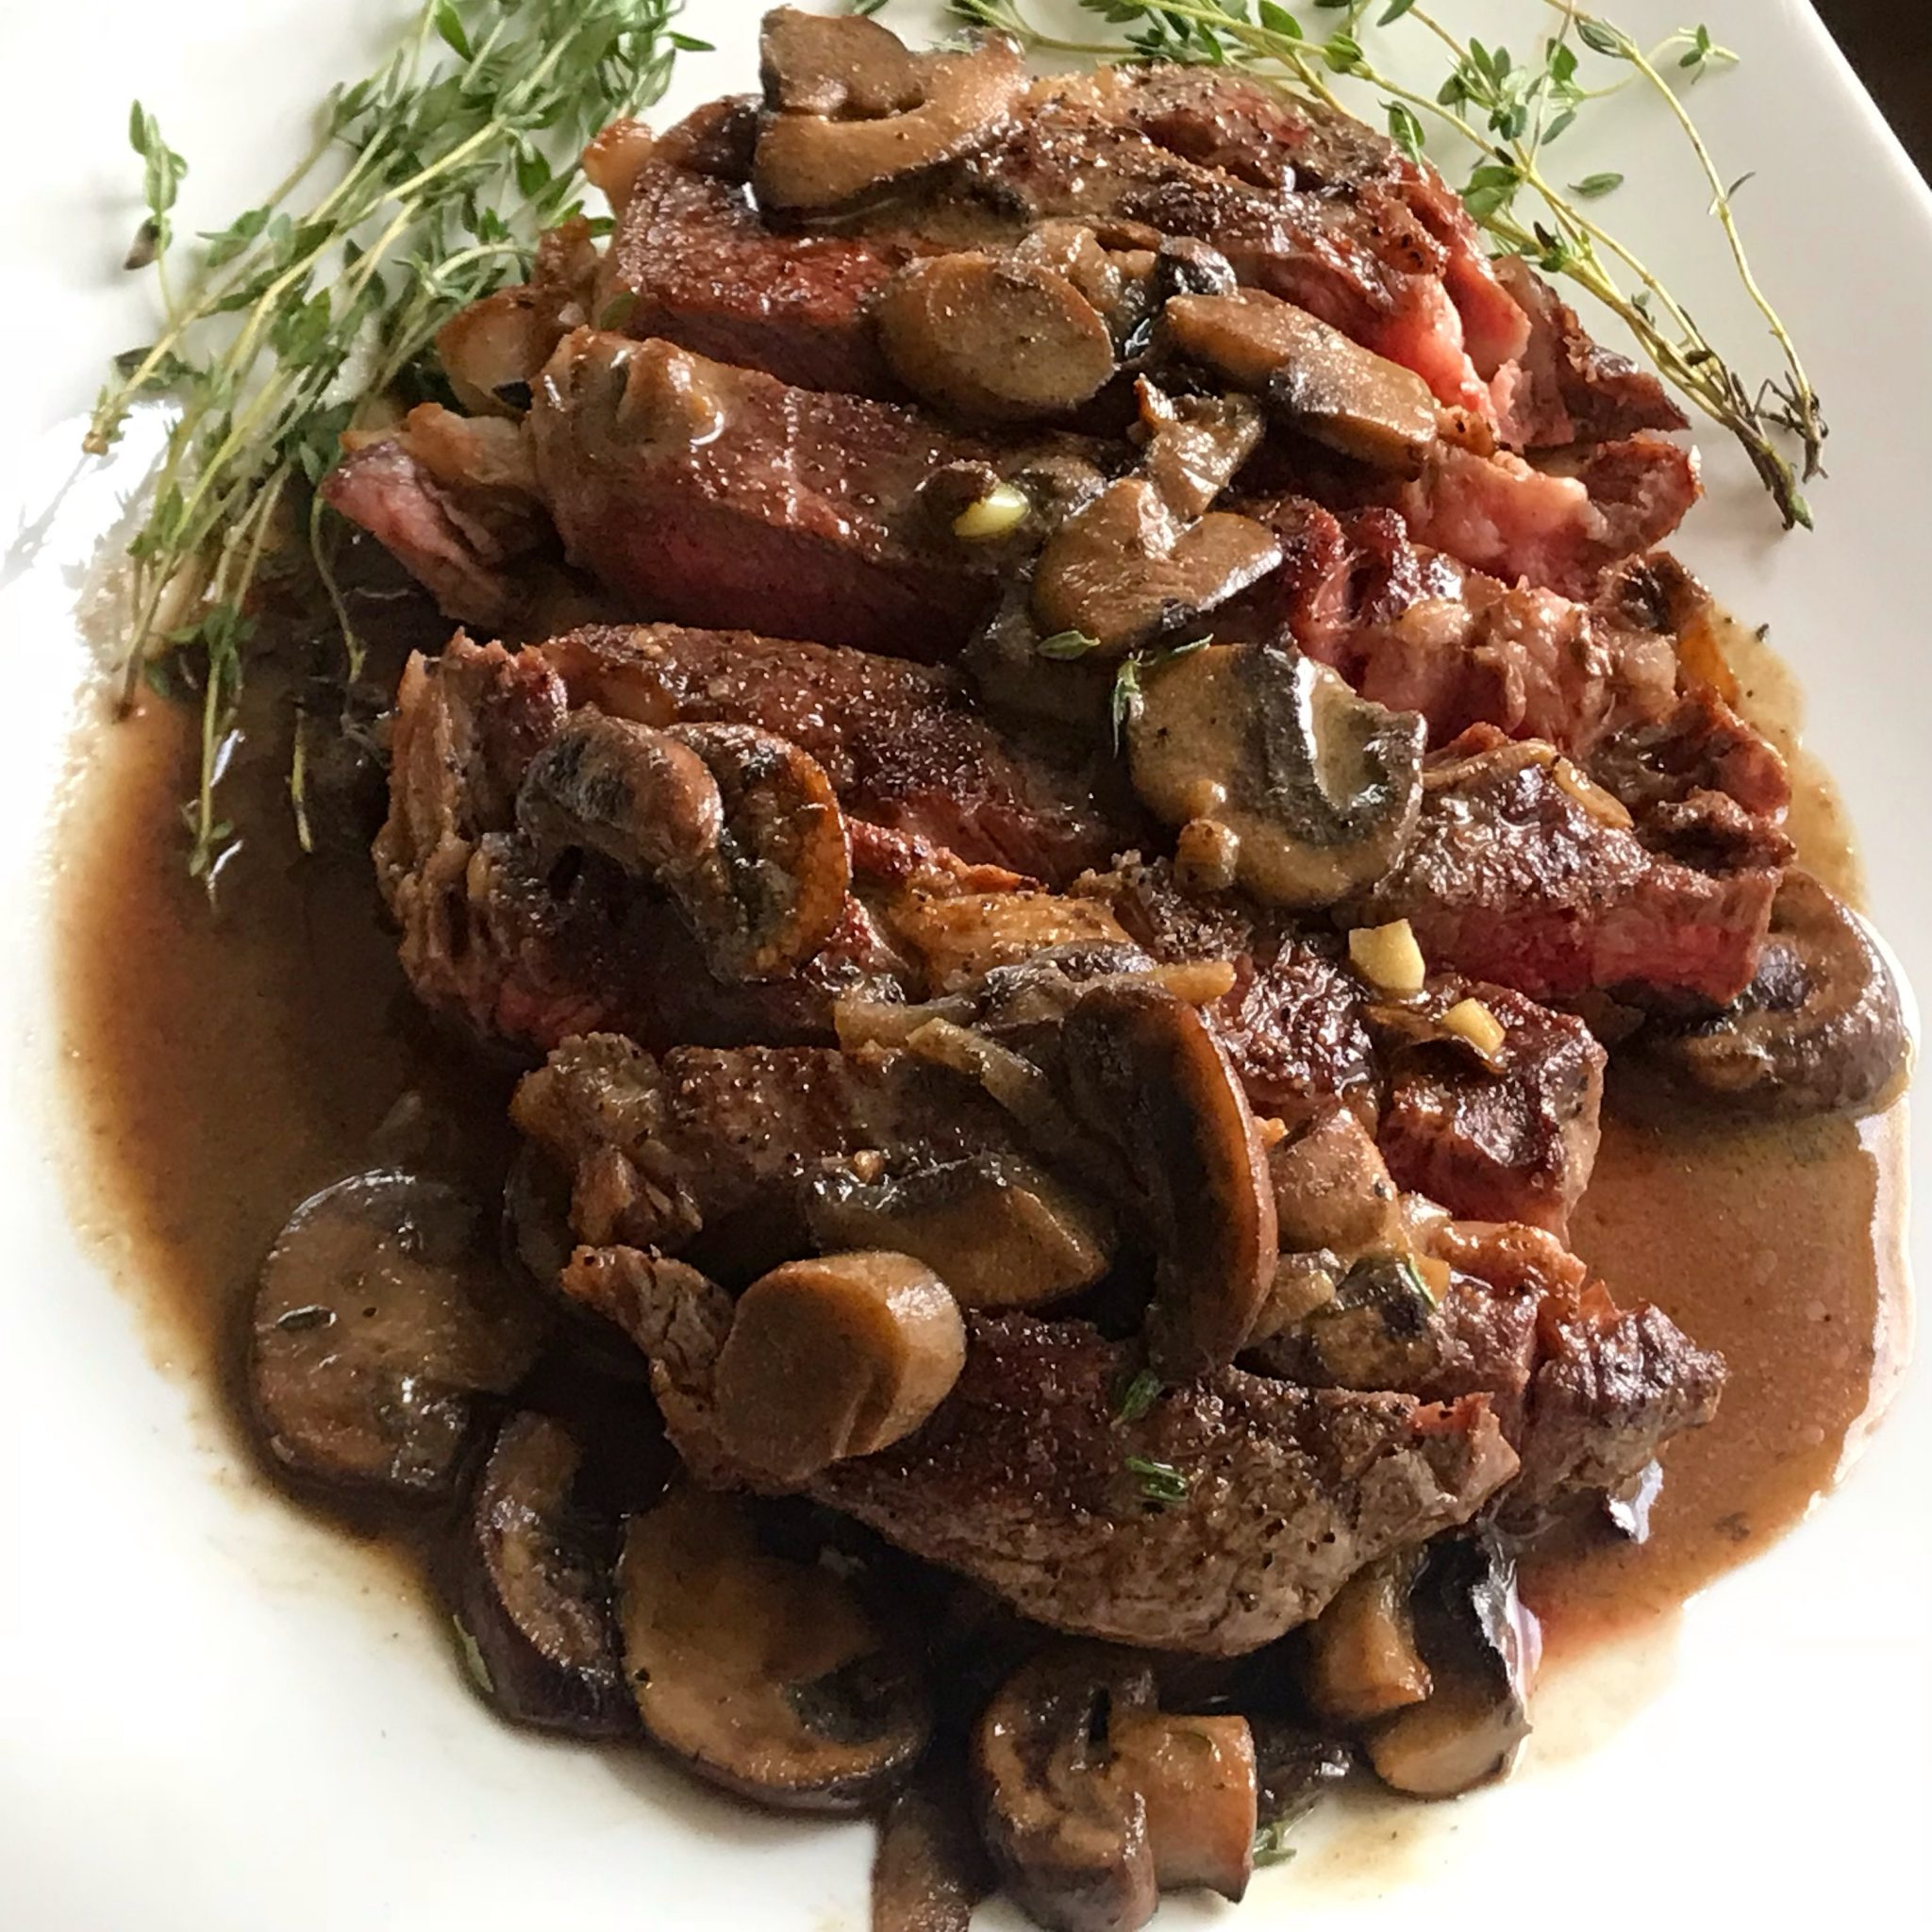 Steak with Mushroom Dijon Sauce